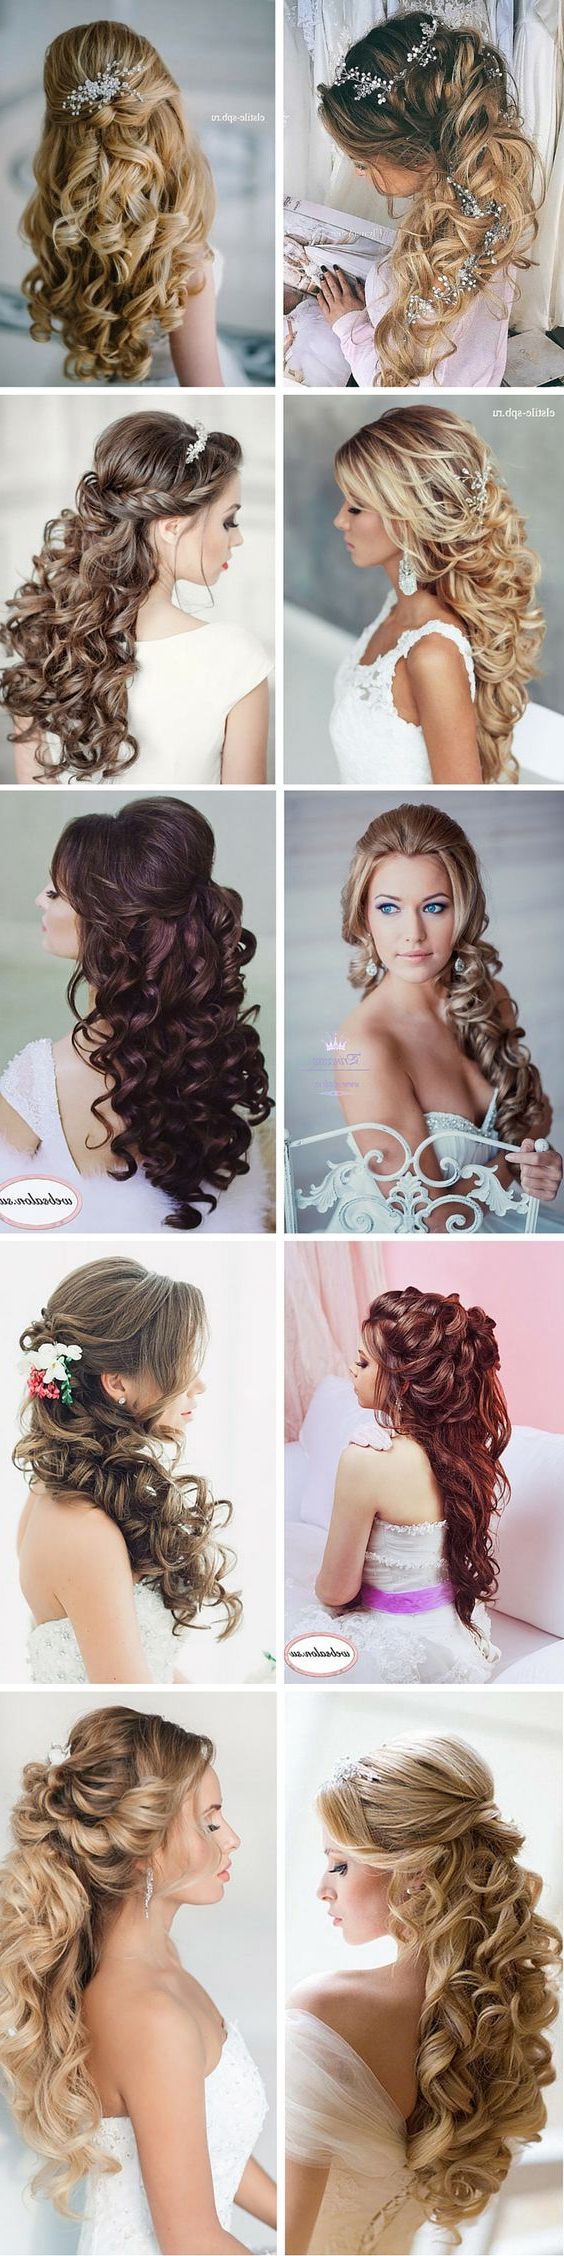 100 Romantic Long Wedding Hairstyles 2018 Curls Half